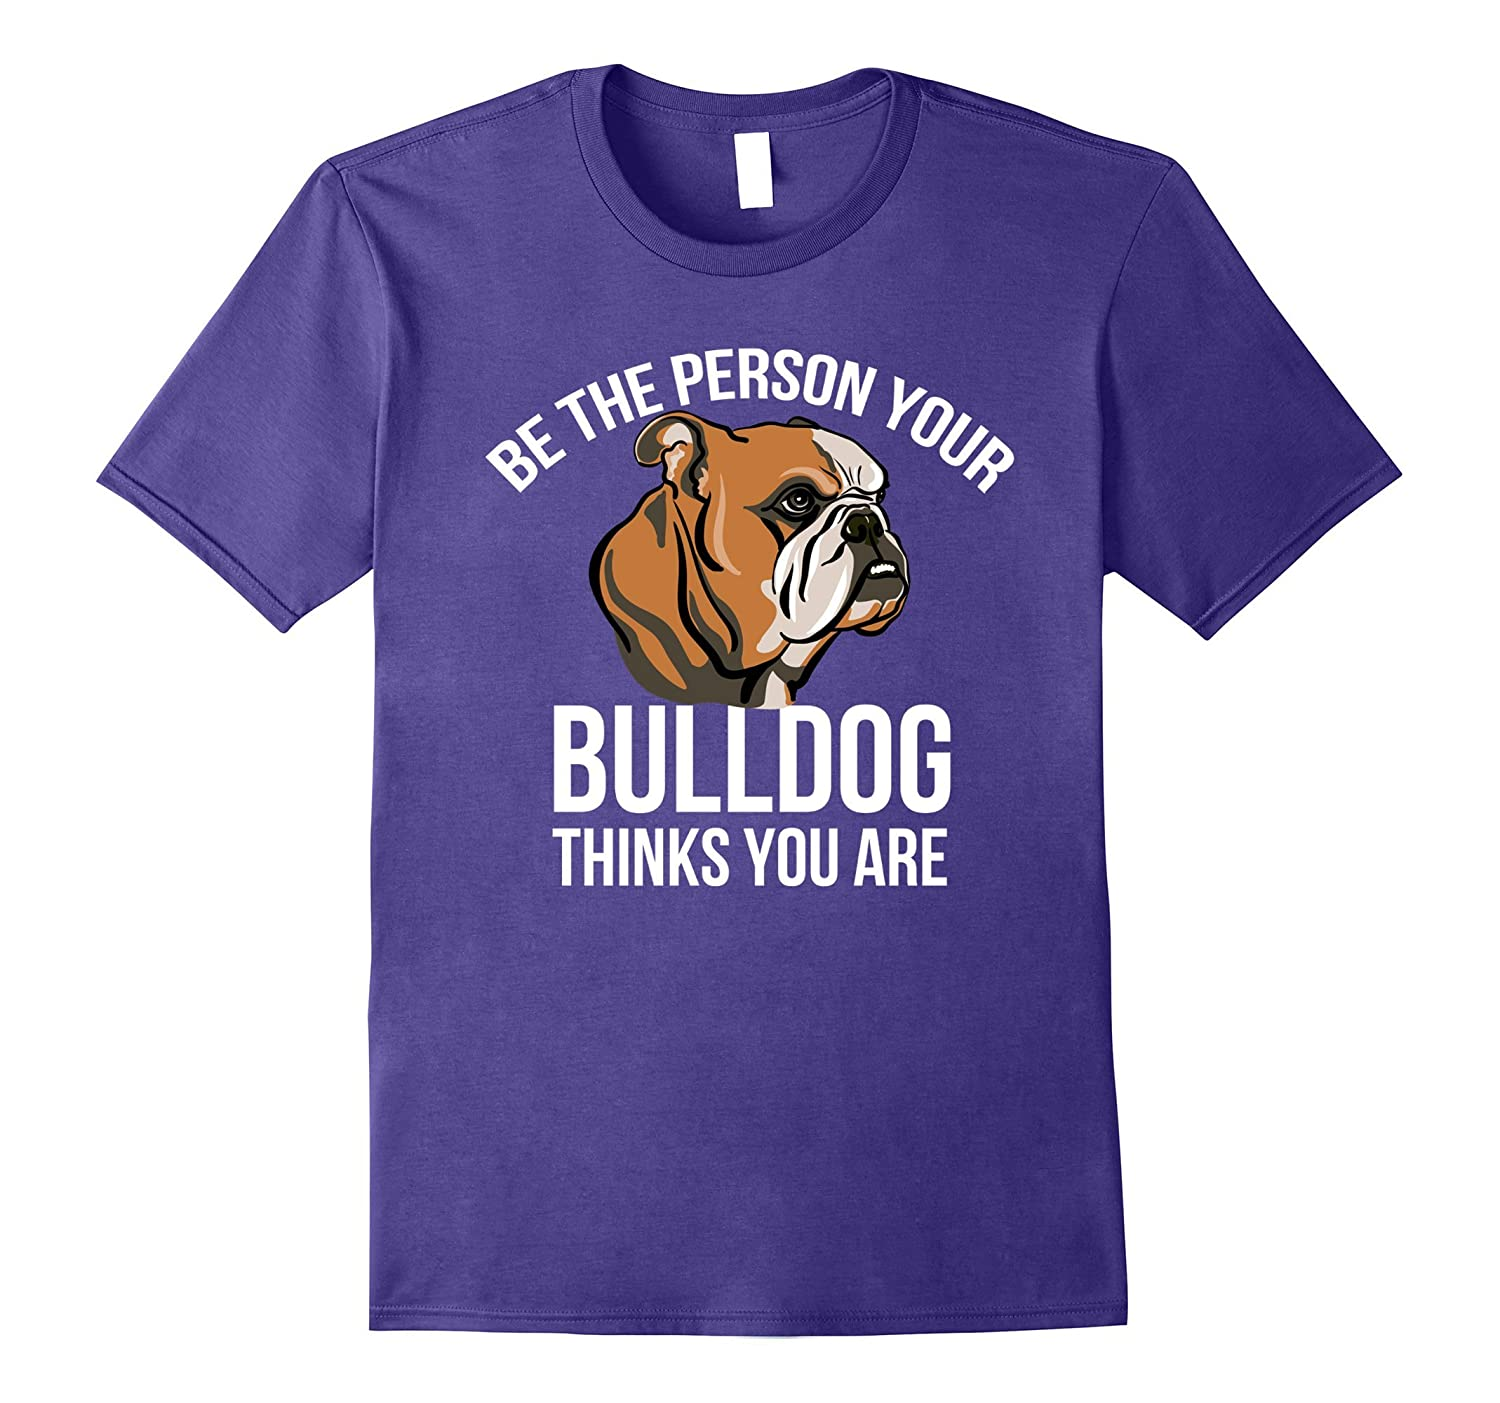 Be The Person Your Bulldog Thinks You Are T-shirt-Vaci